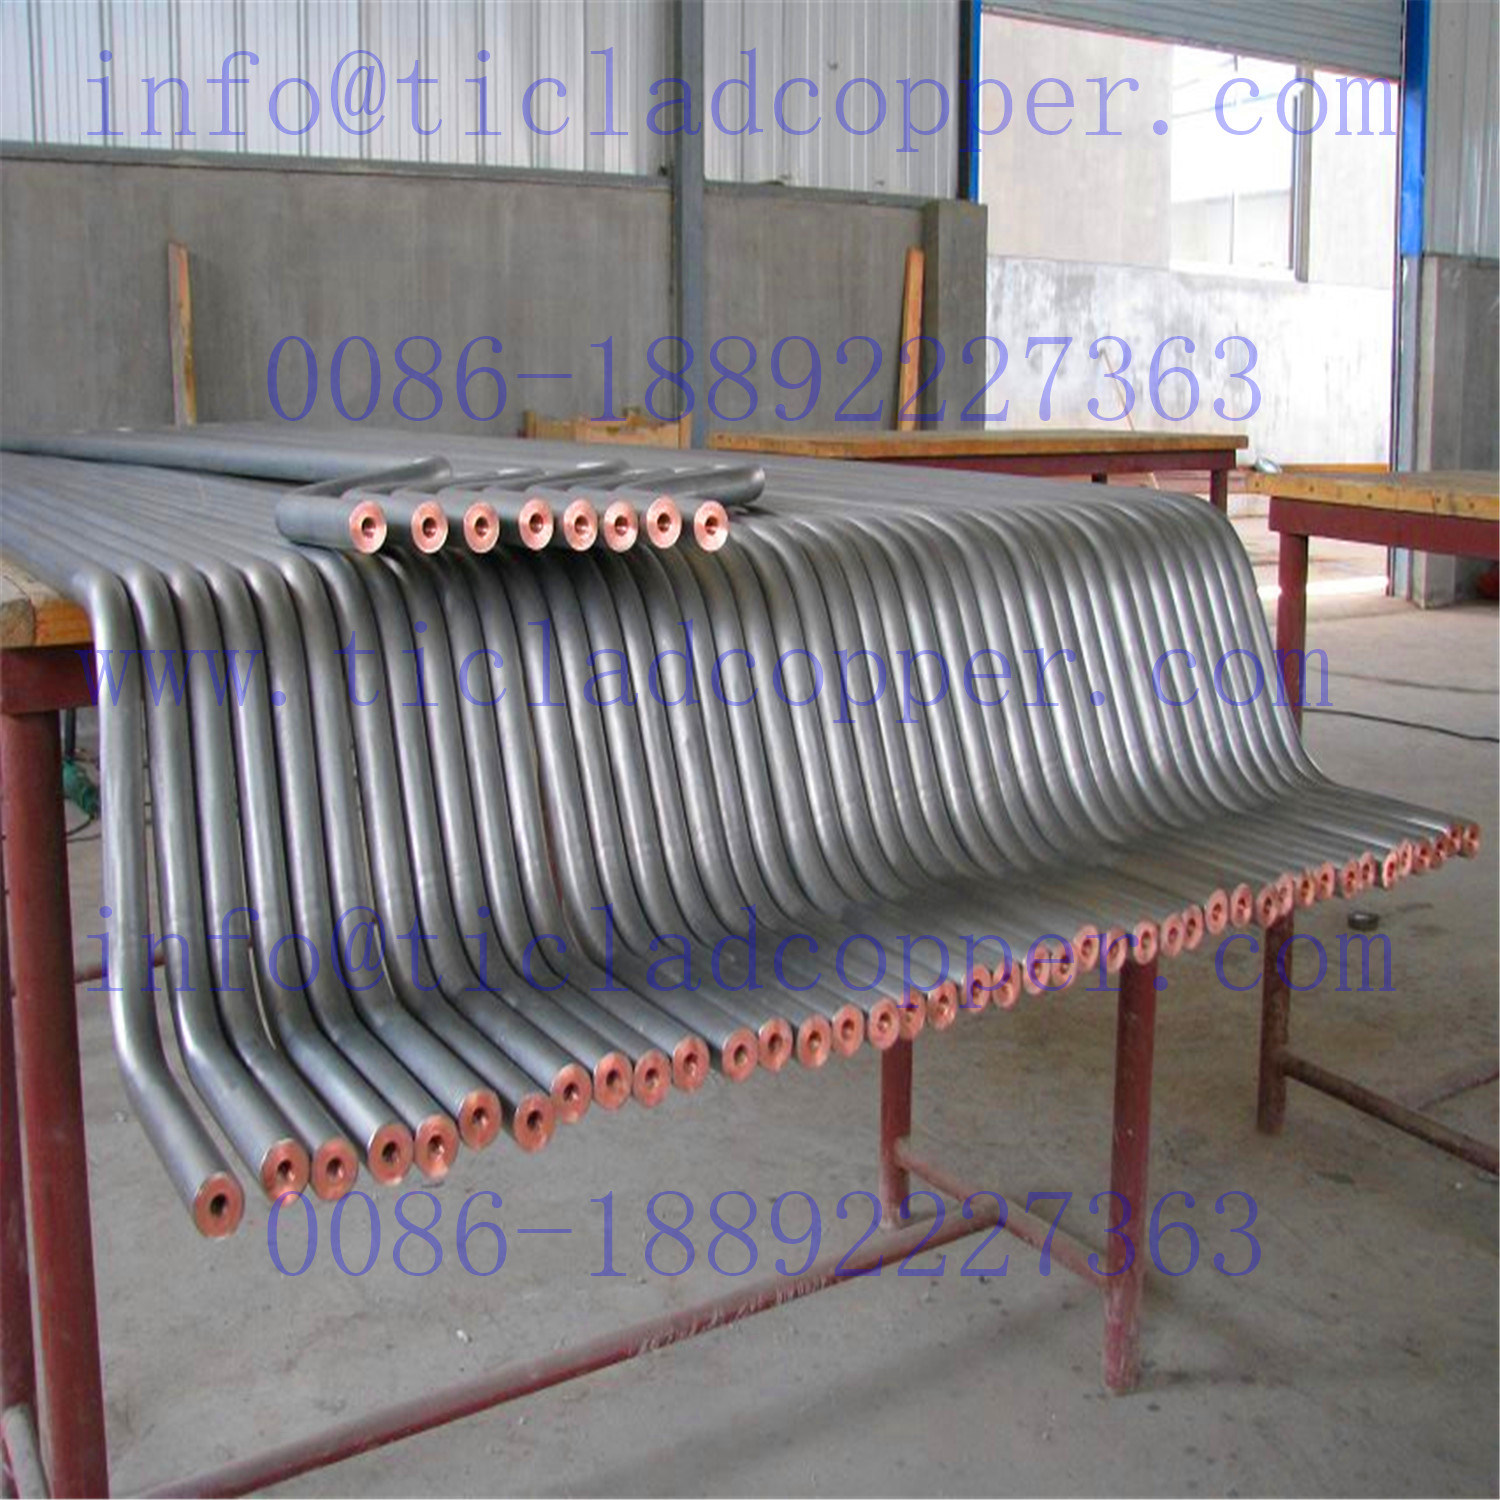 Titanium Clad Copper Pipe Tube for Electro-Purification/ Sea Water Treatment